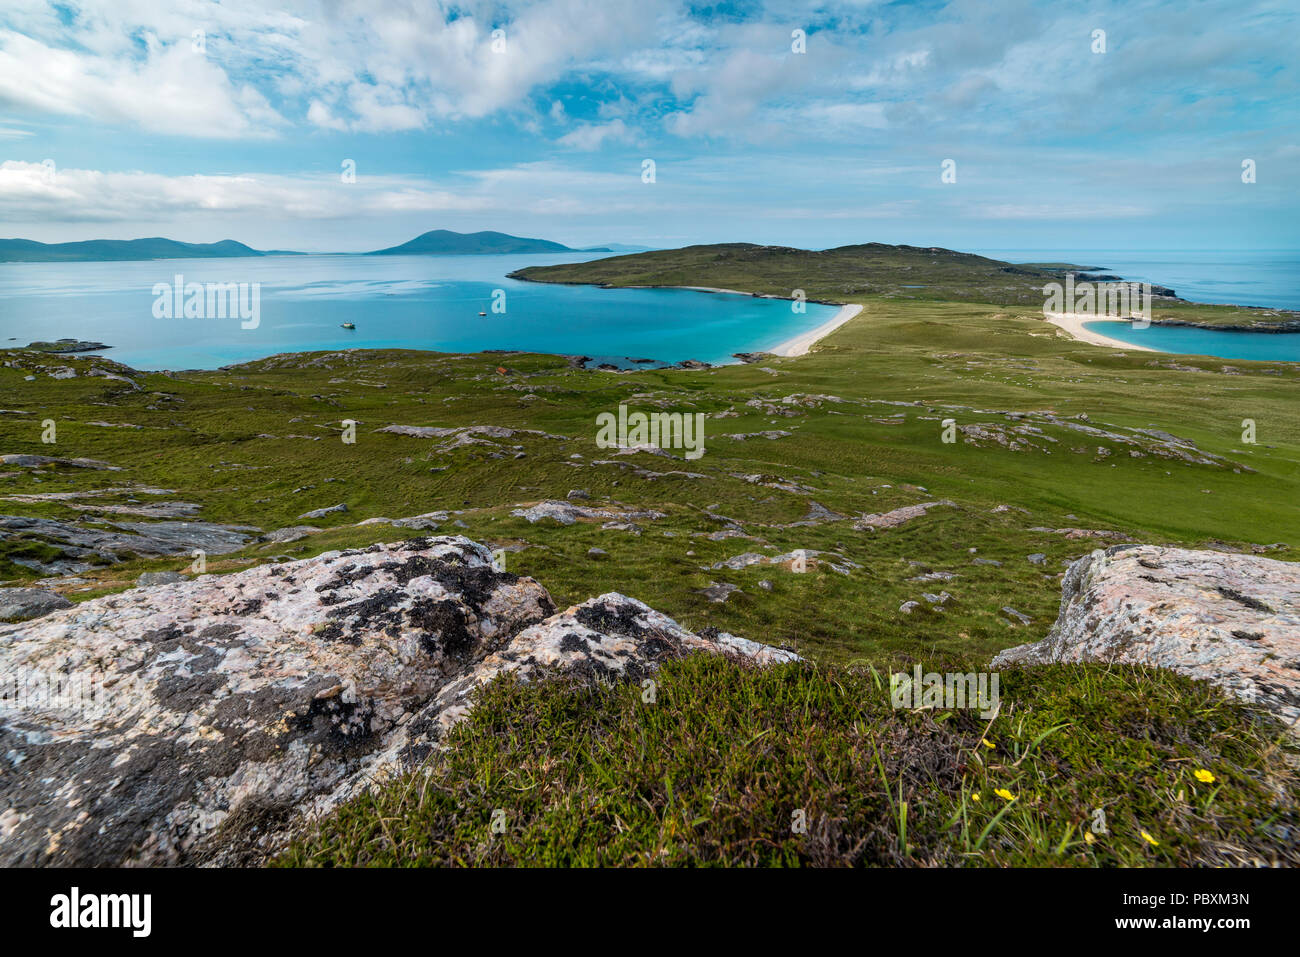 Isle of Taransay landscape, Isle of Harris, Scotland, UK, Europe - Stock Image